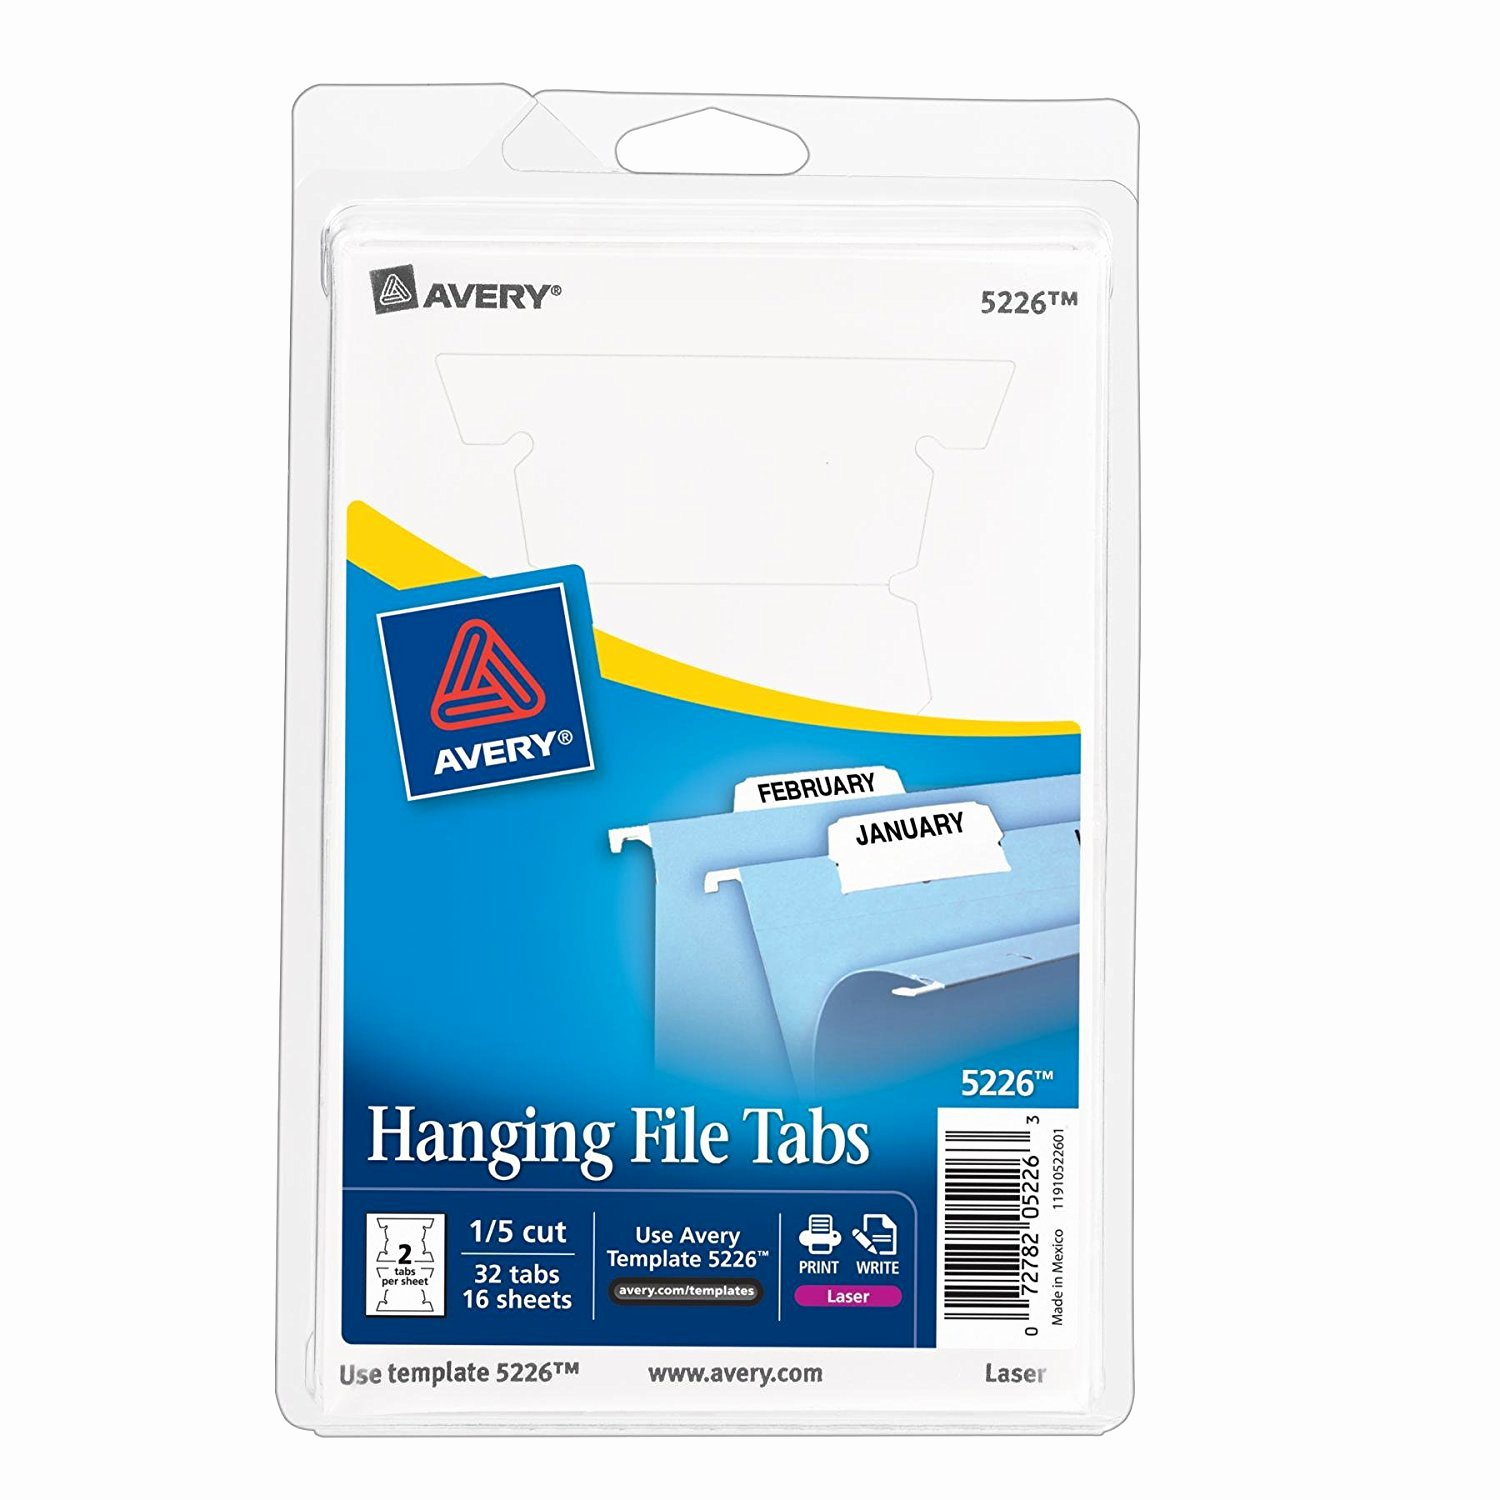 Hanging File Label Template Best Of Avery Hanging File Labels Template Templates Data